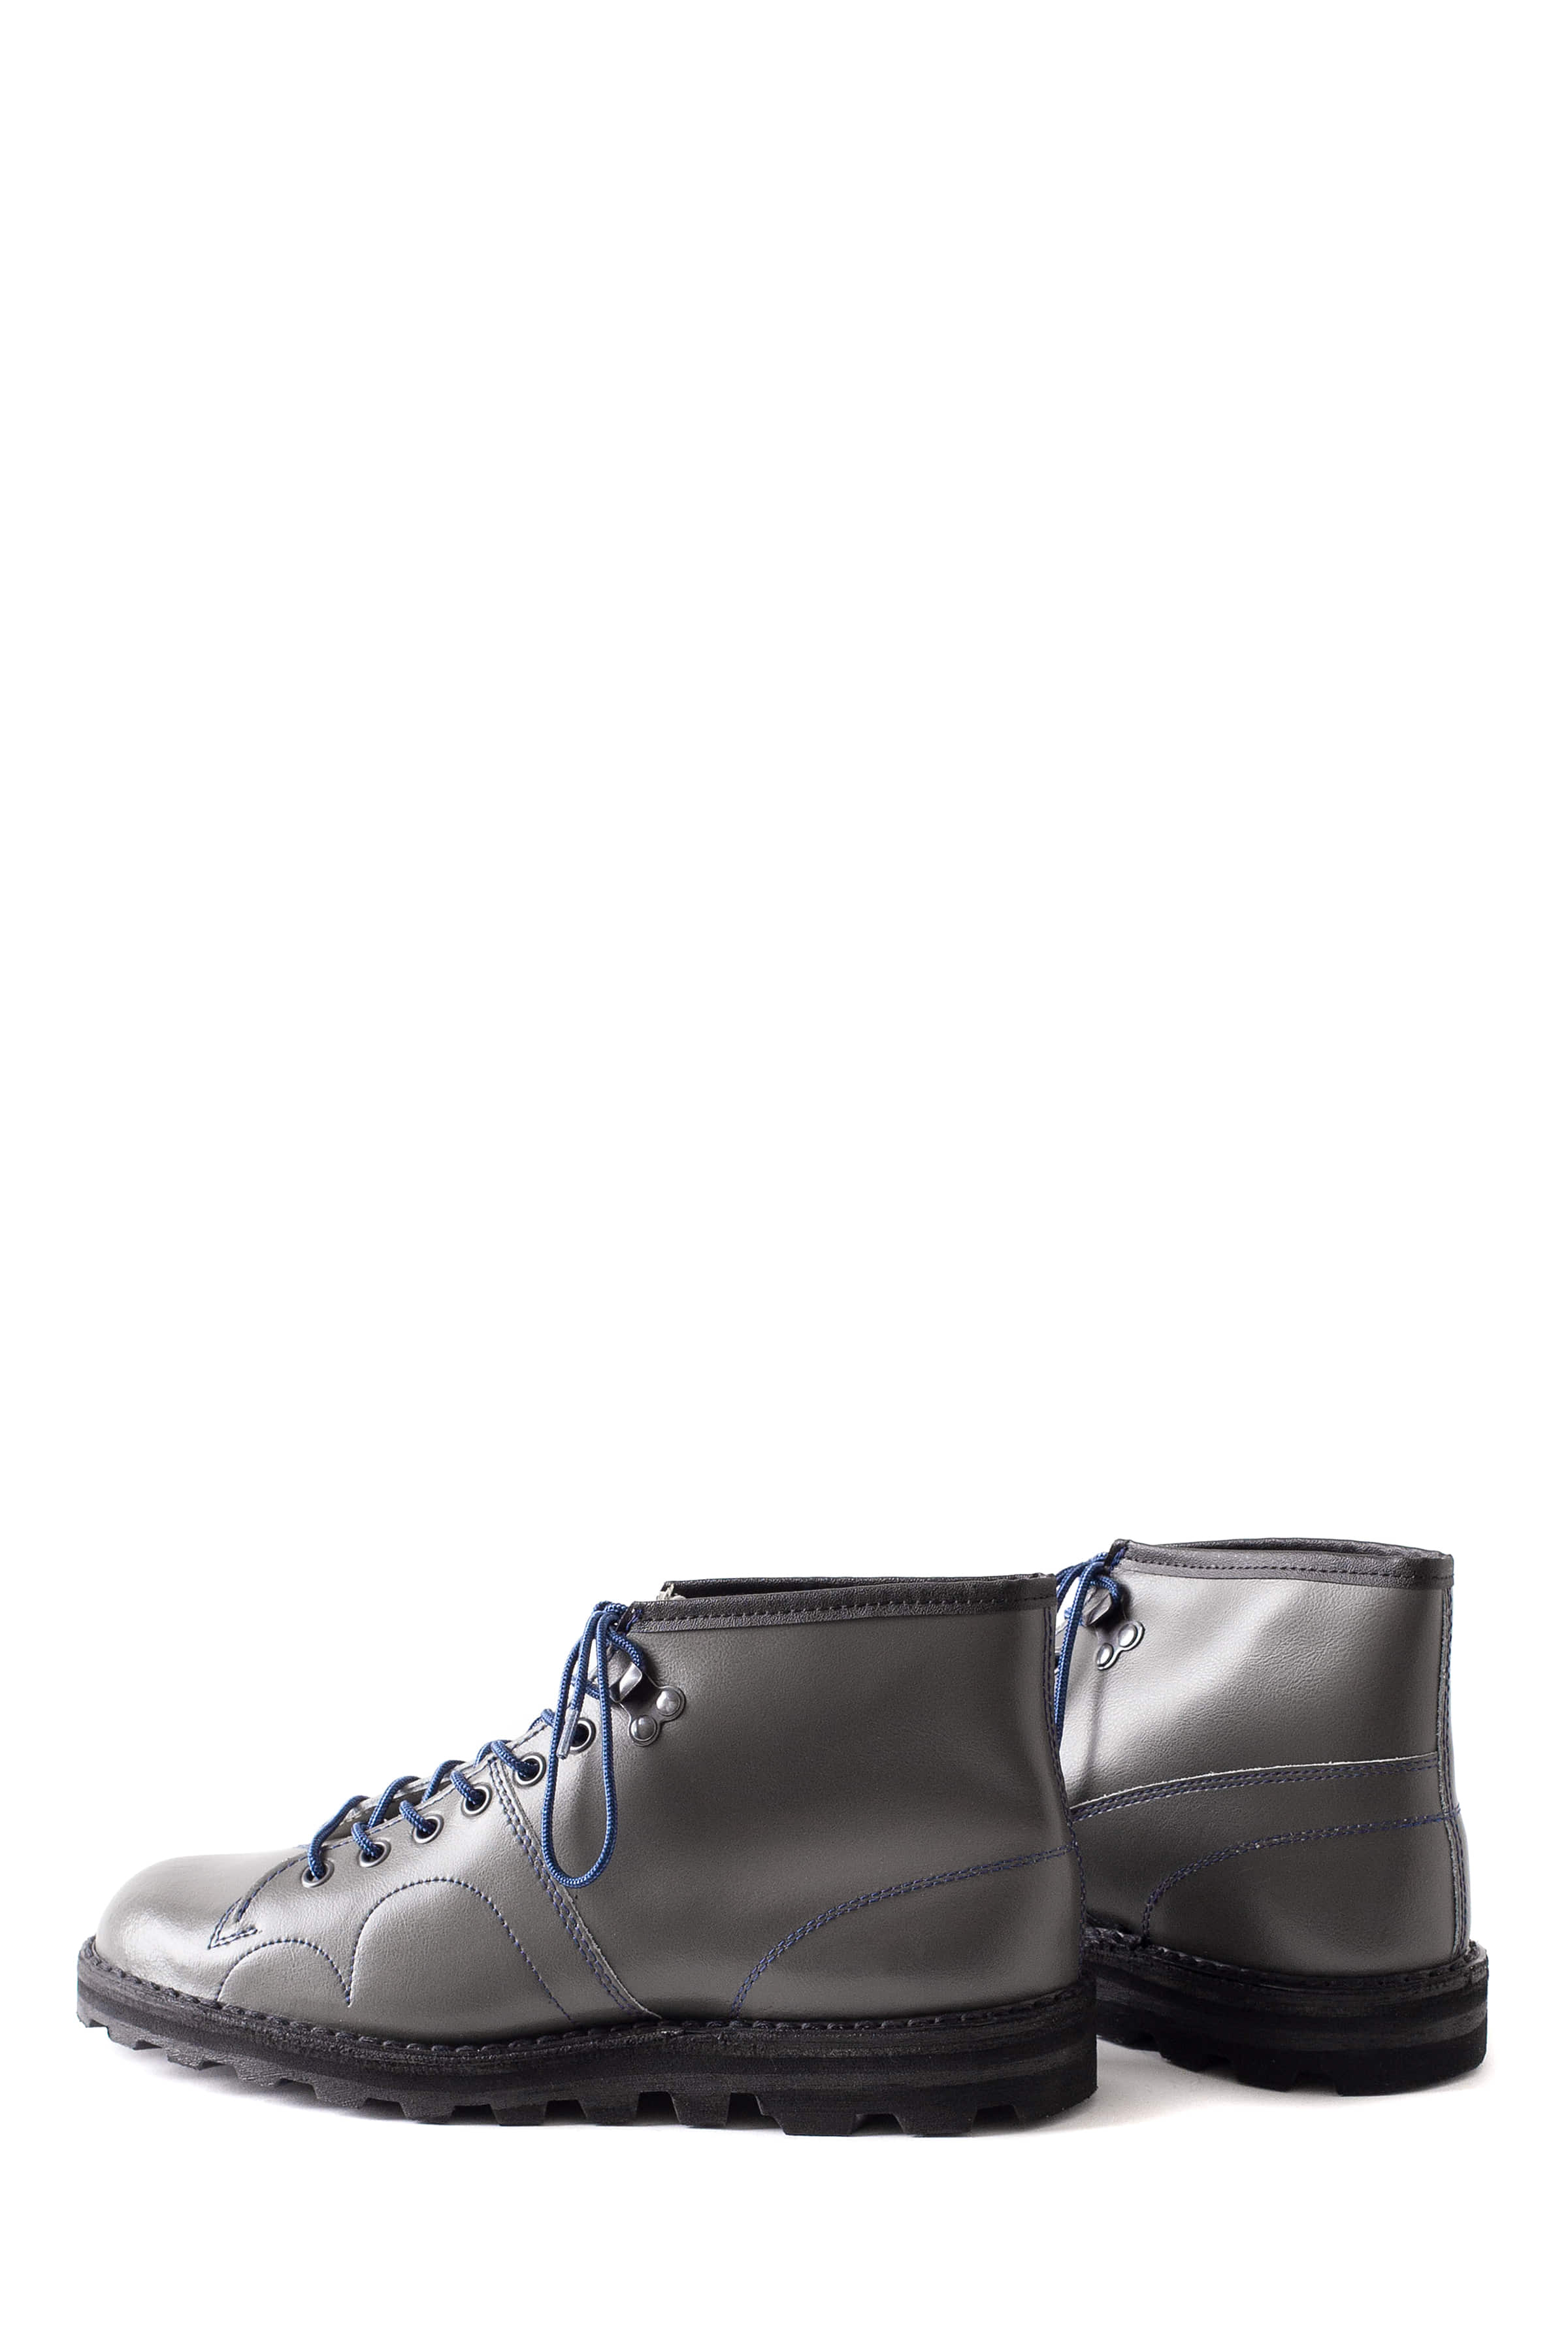 REPRODUCTION OF FOUND : Czecho Slovakia Military Boots 4100L (Grey)